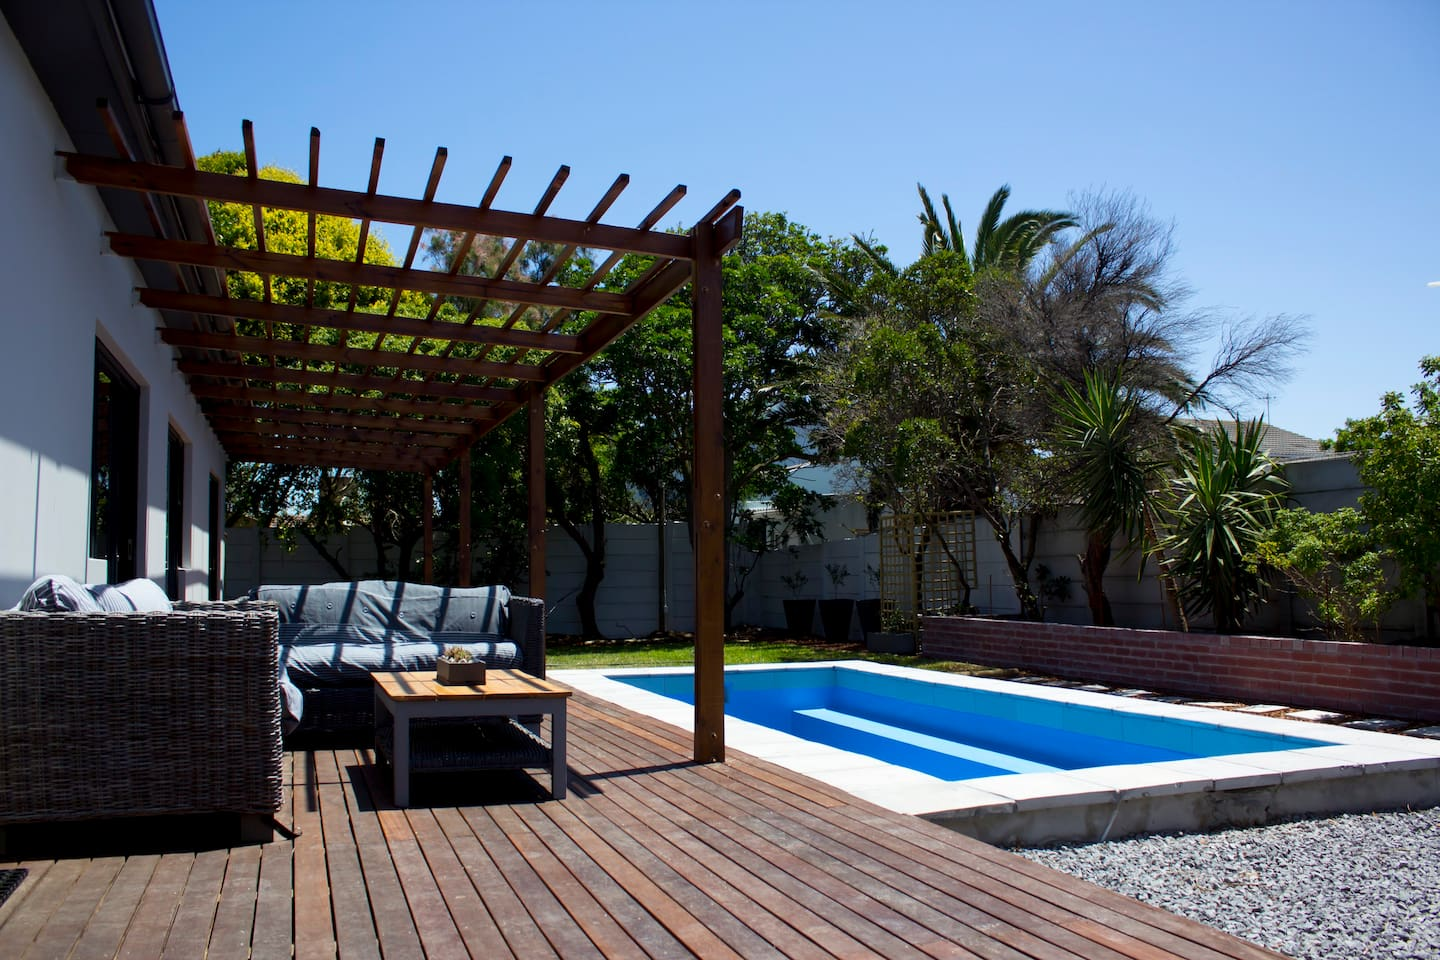 Outside deck and swimming pool